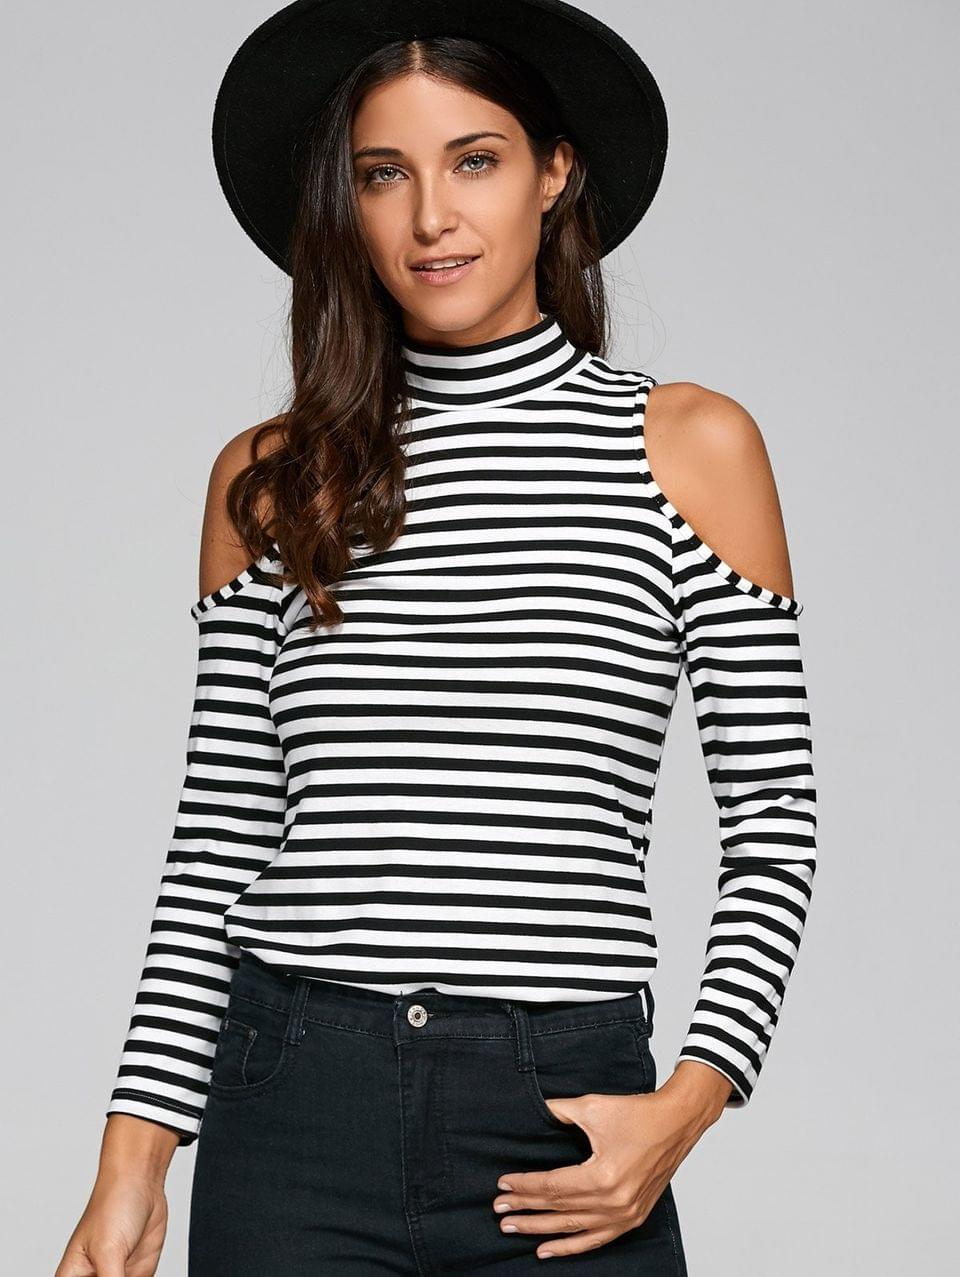 Women's Striped Cold Shoulder T-Shirt - White And Black Xl